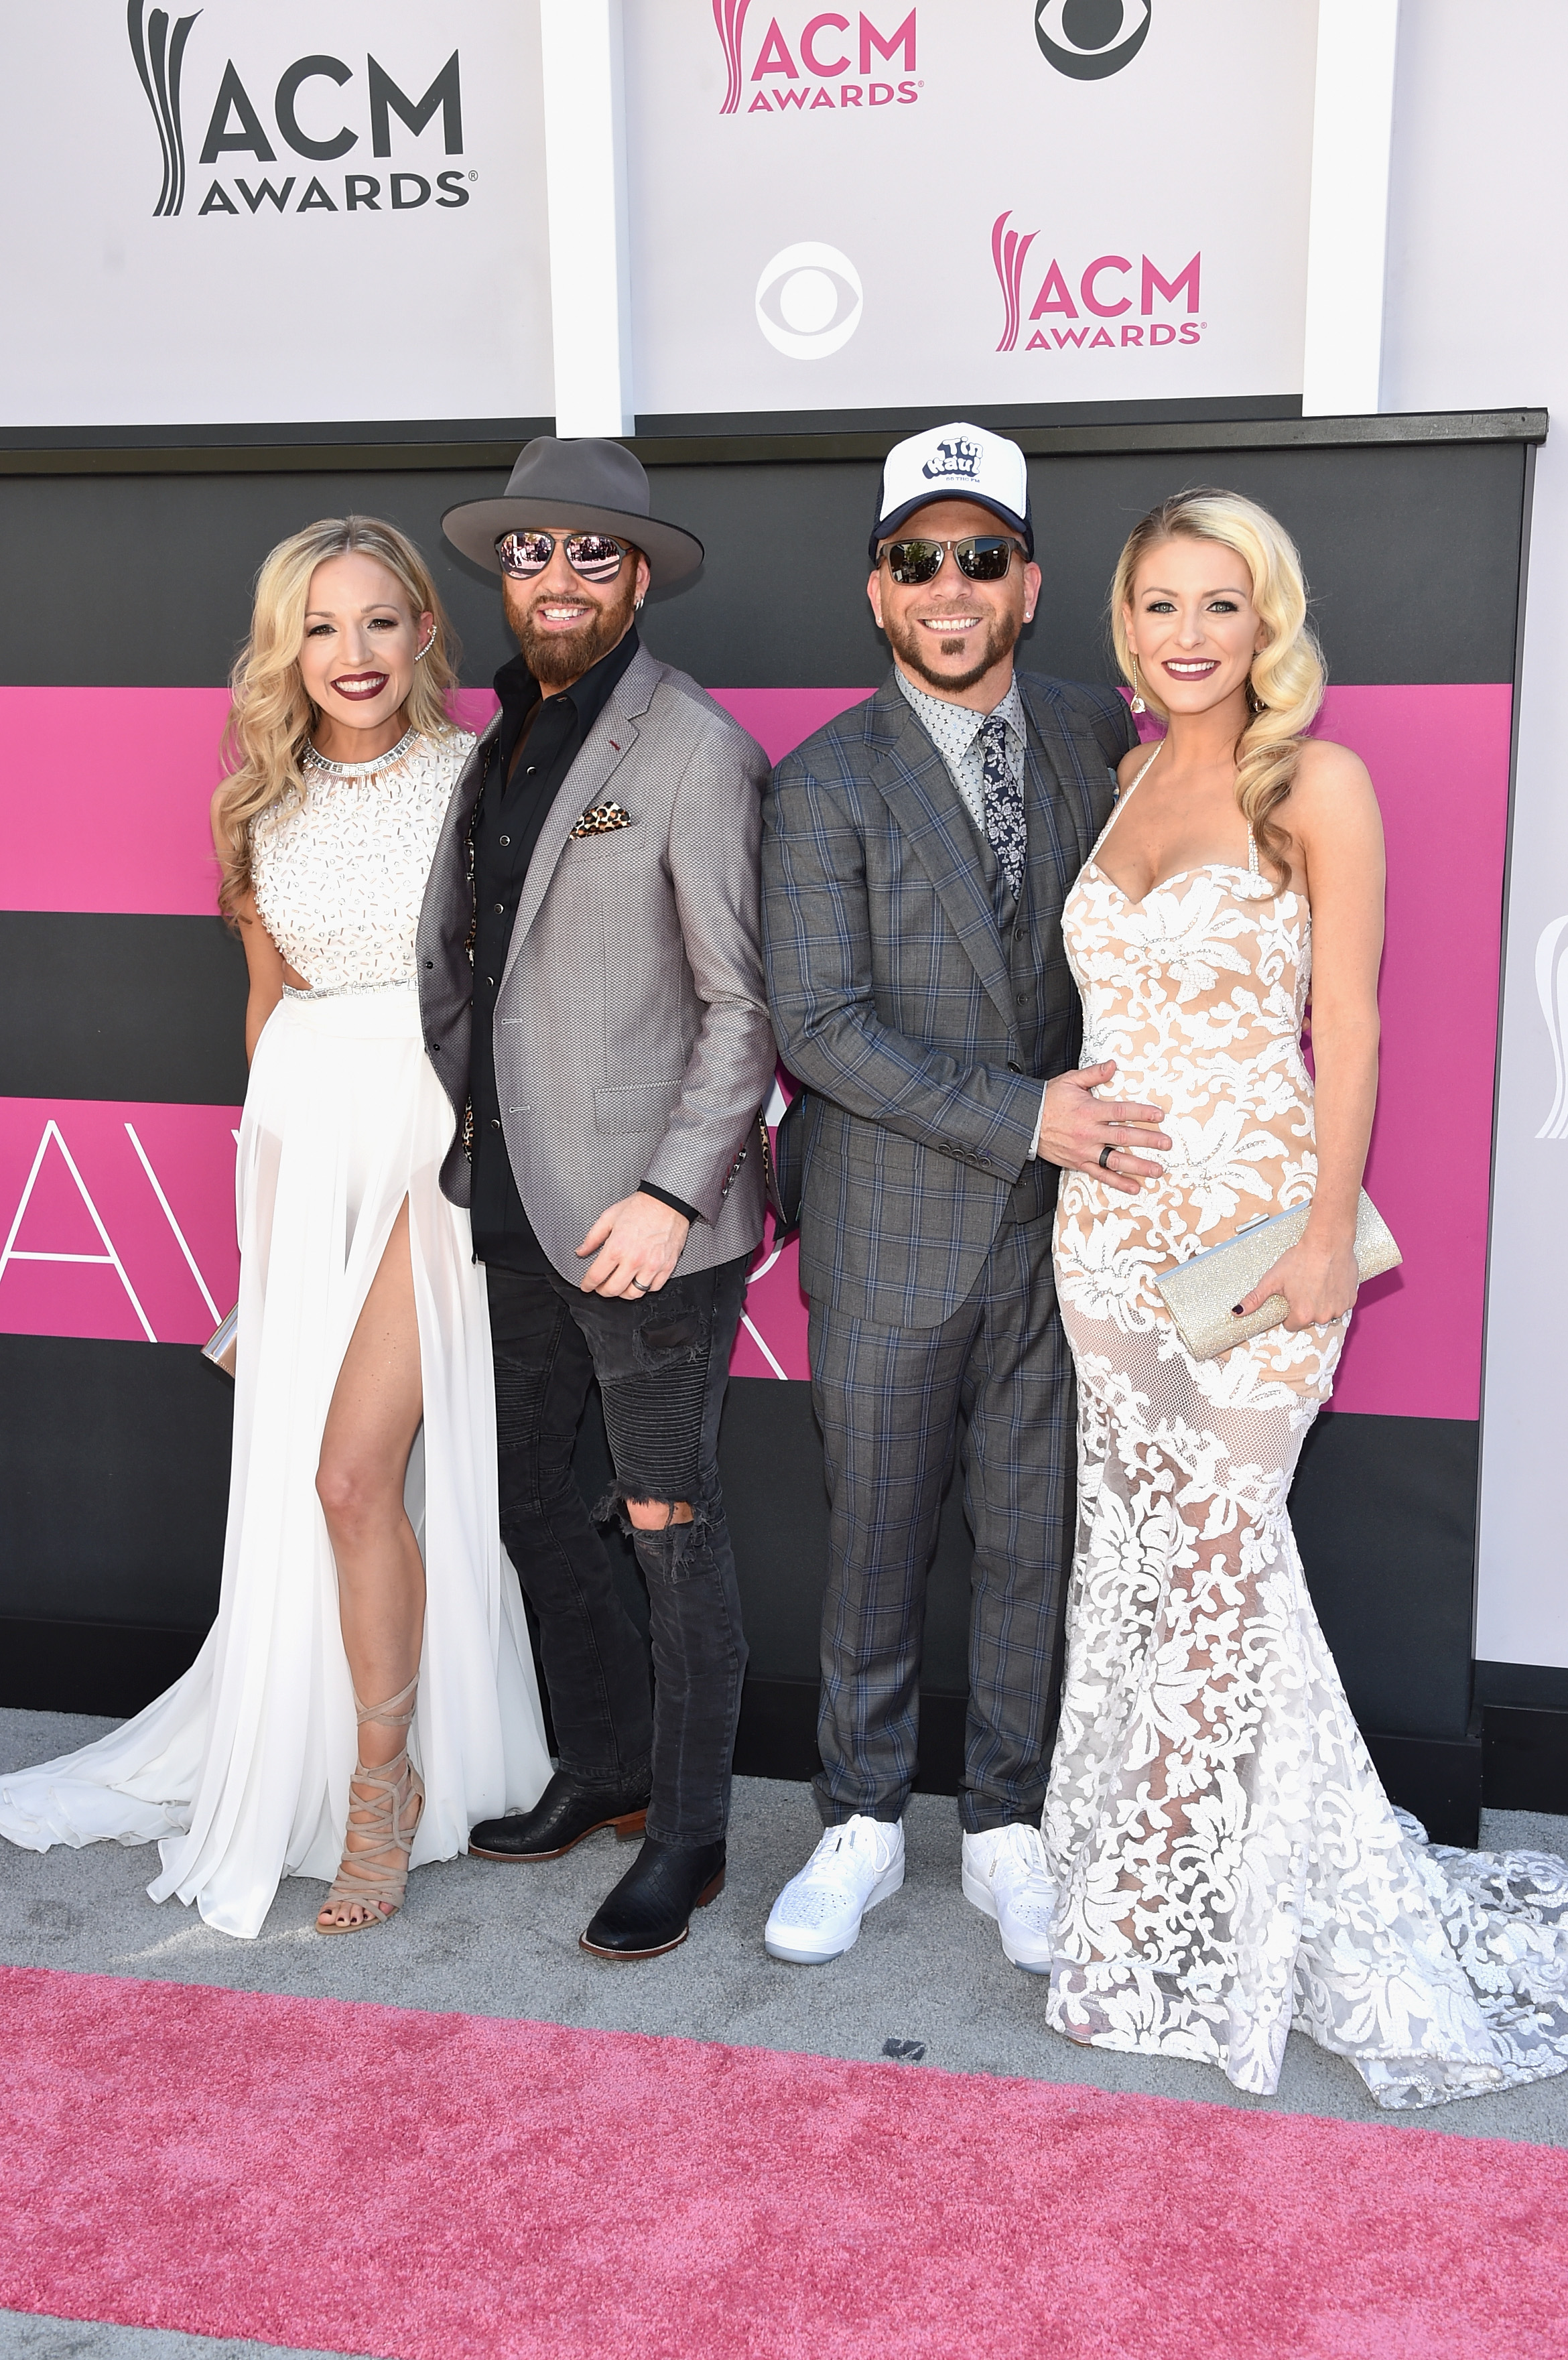 Kristen White, Preston Brust and Chris Lucas of music group LOCASH, and Kaitlyn Lucas; Photo by John Shearer/WireImage